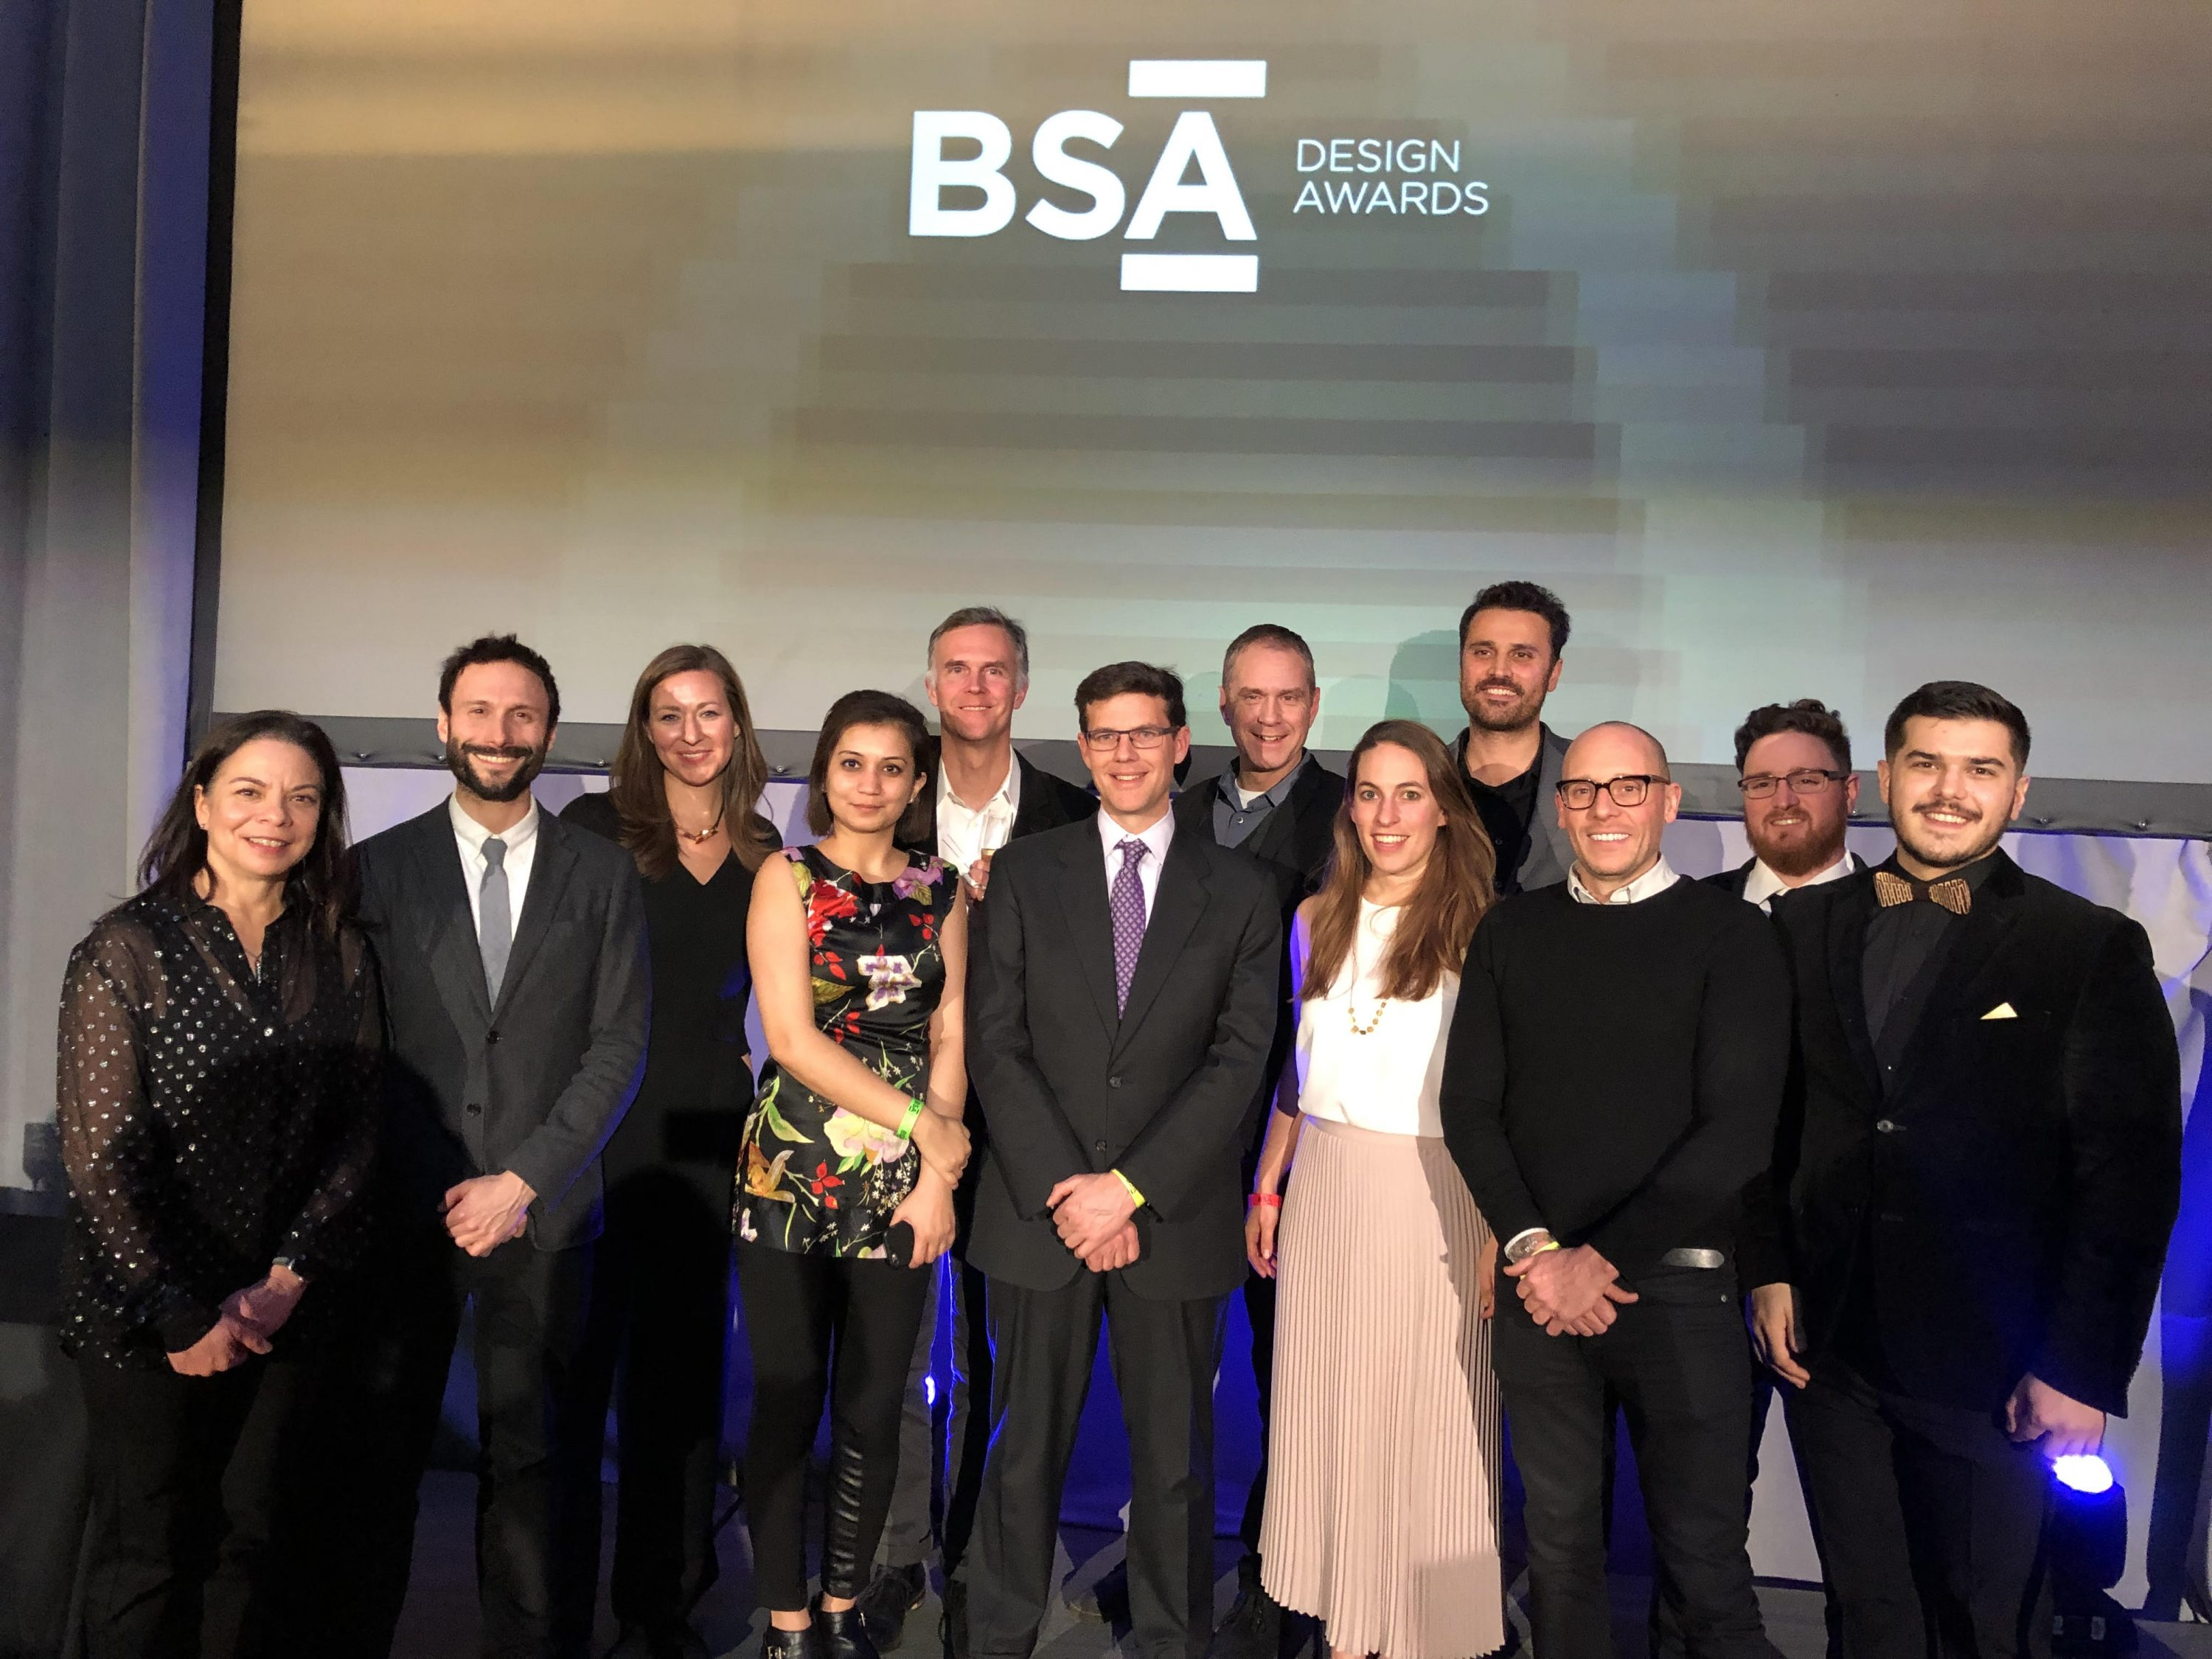 Utile wins two awards at the 2018 BSA Design Awards